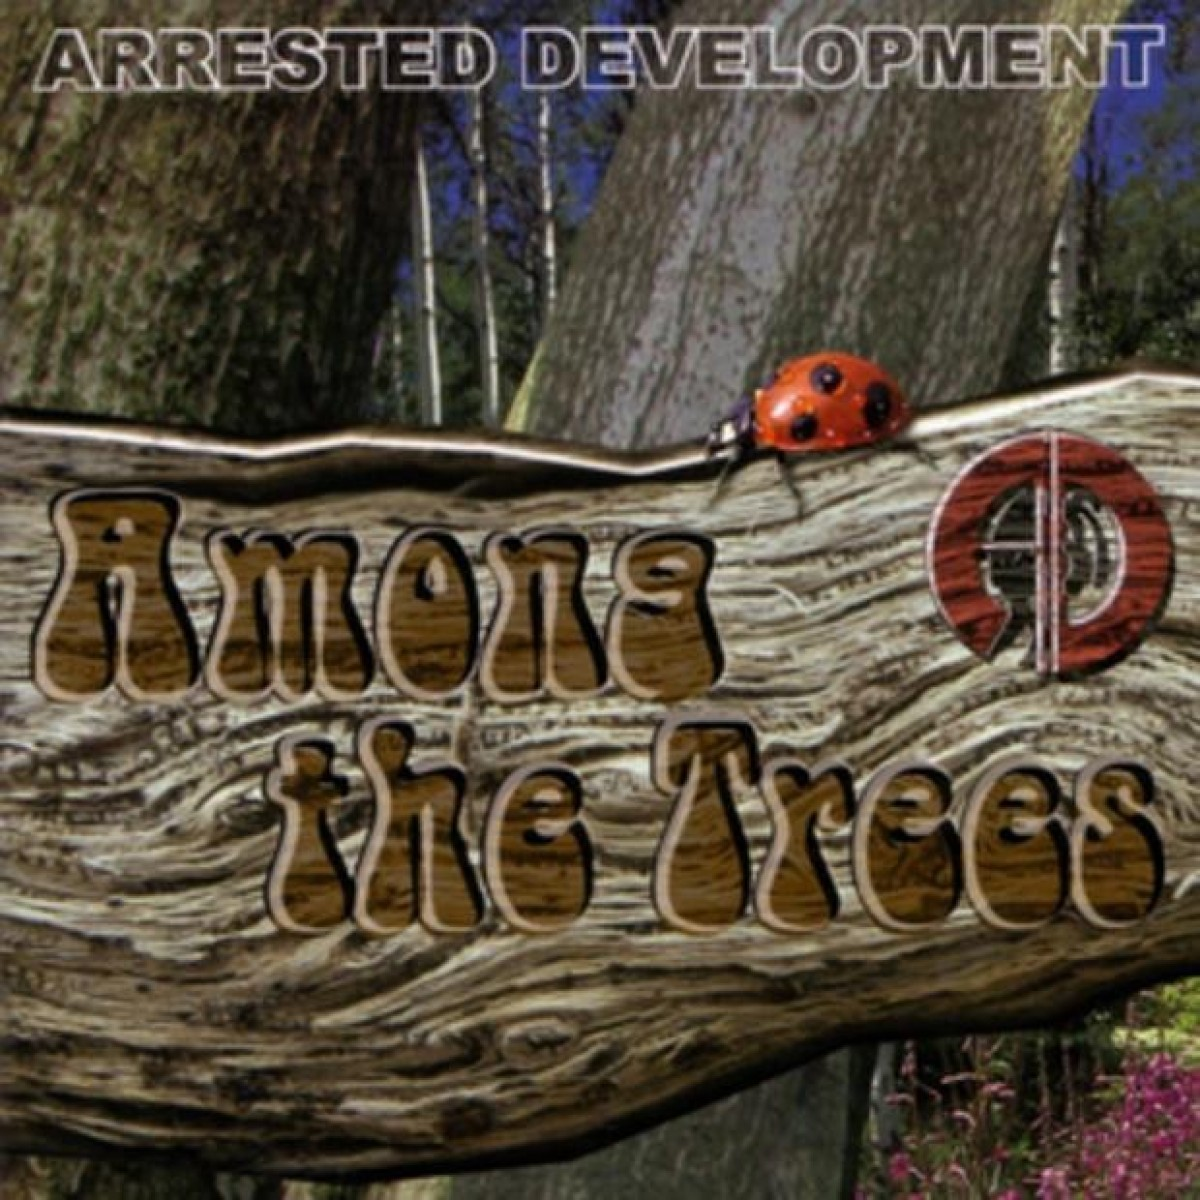 Arrested Development - Among The Trees CD - 0155992ERE